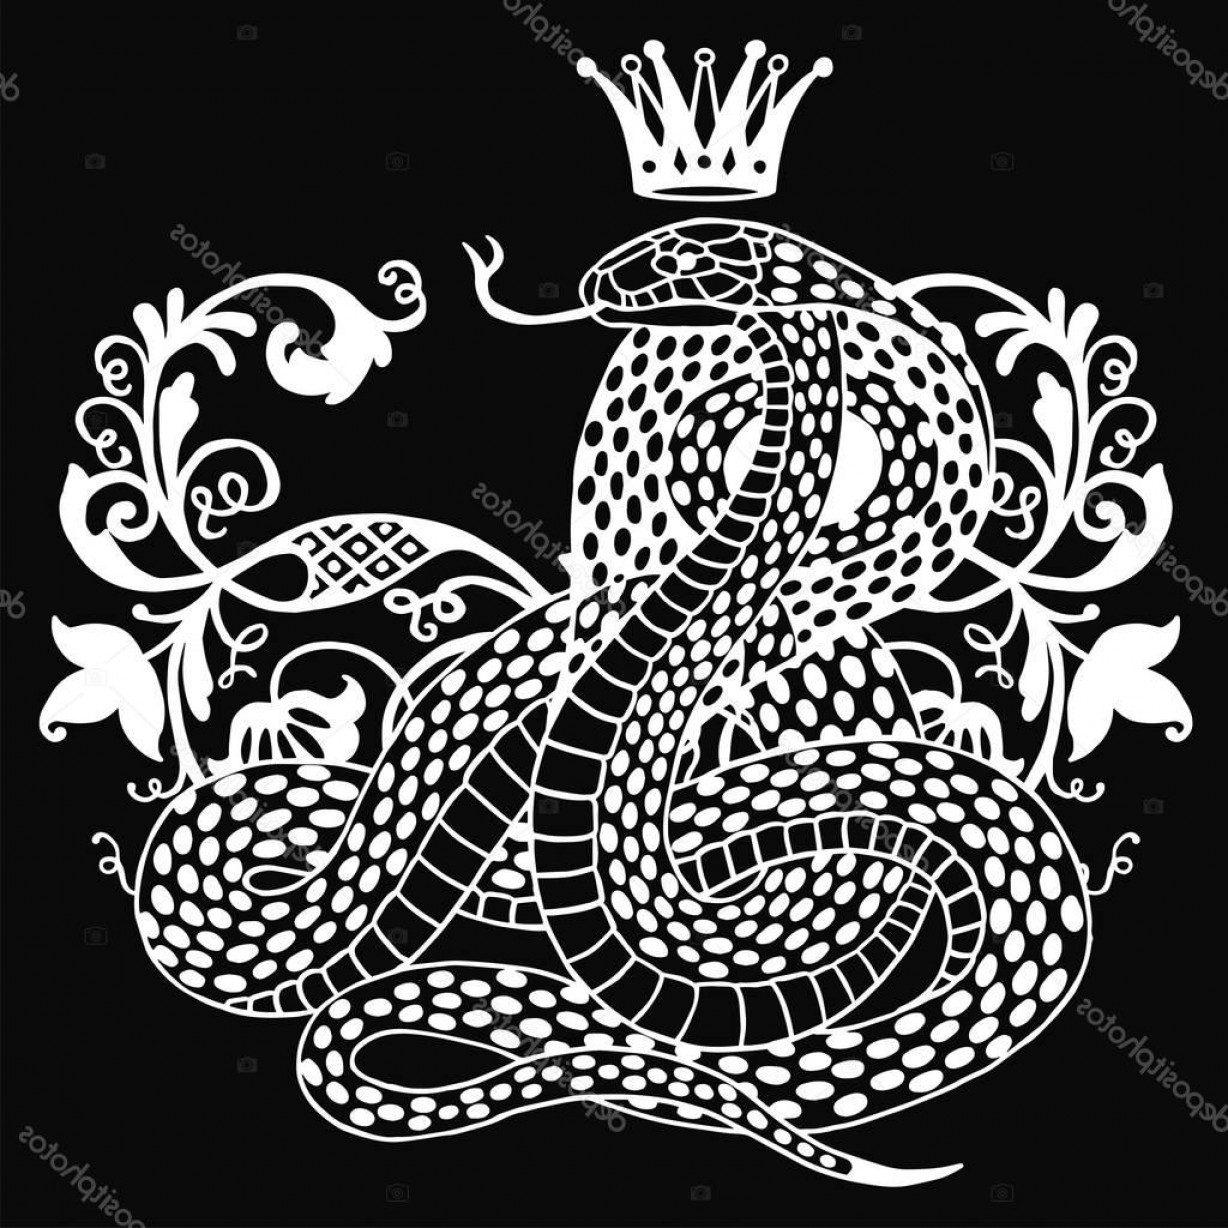 Snake Crown Vector: Stock Illustration Snake With Crown Illustration